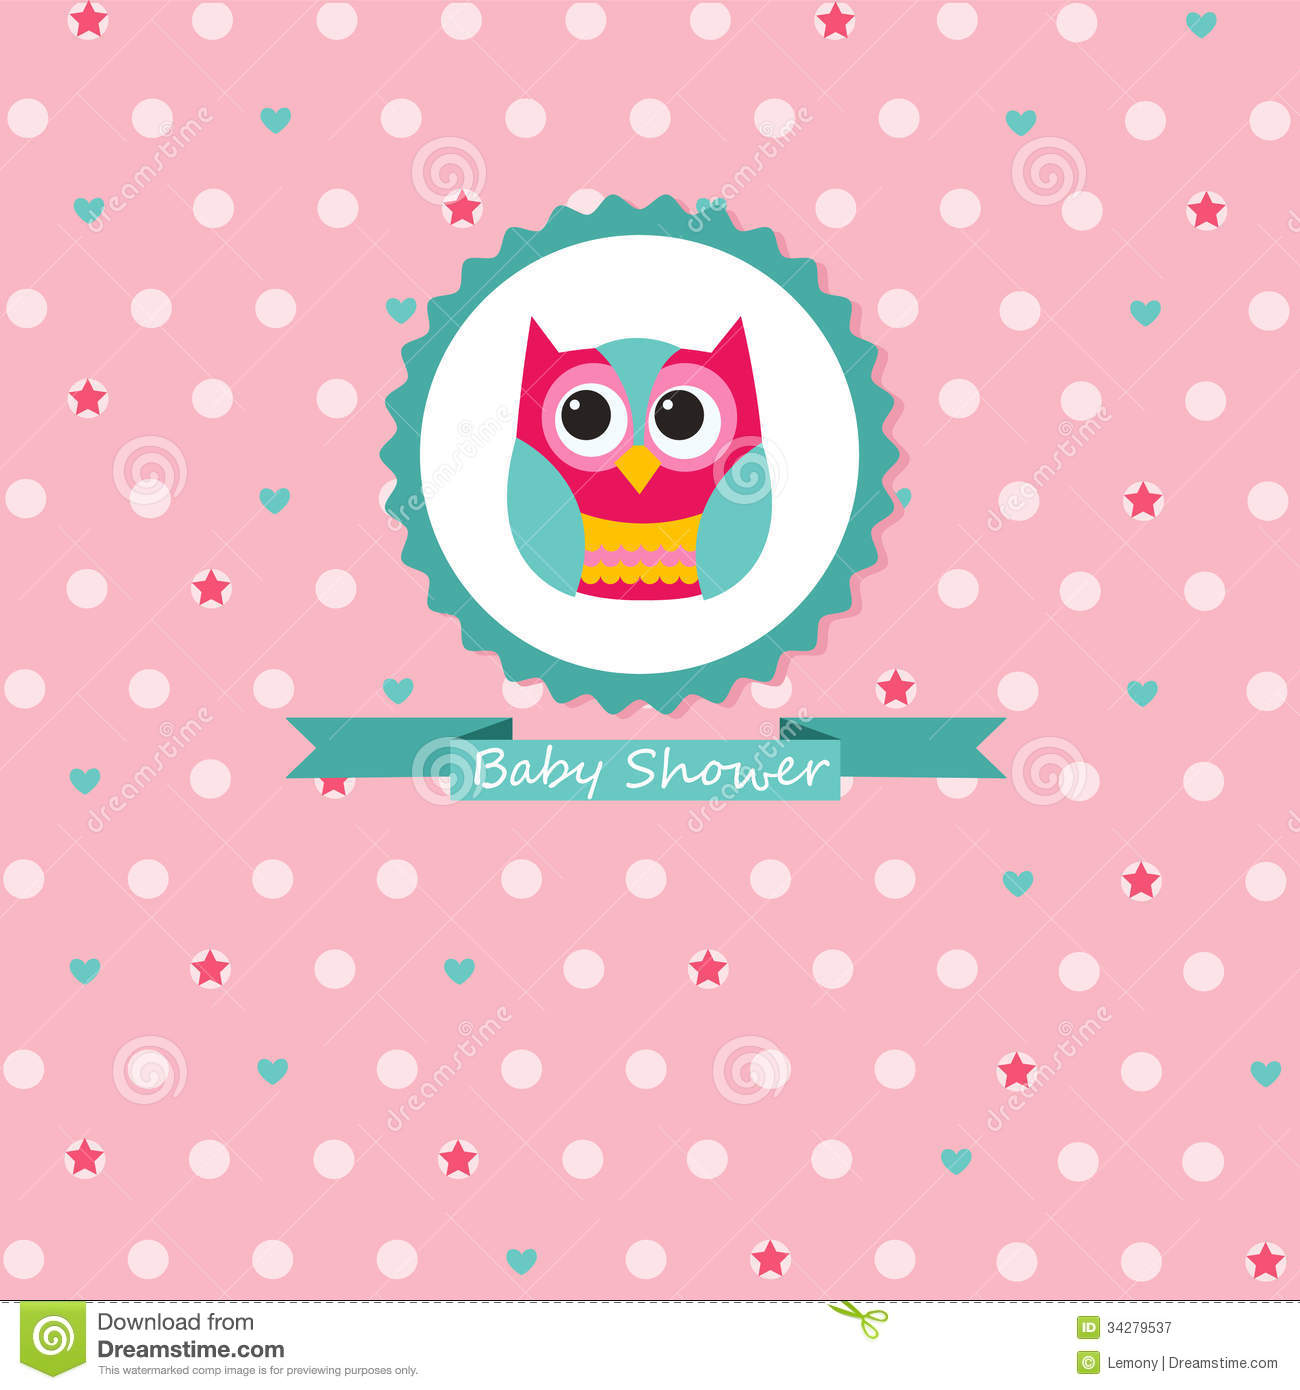 Owls Baby Shower Invitations as great invitation design